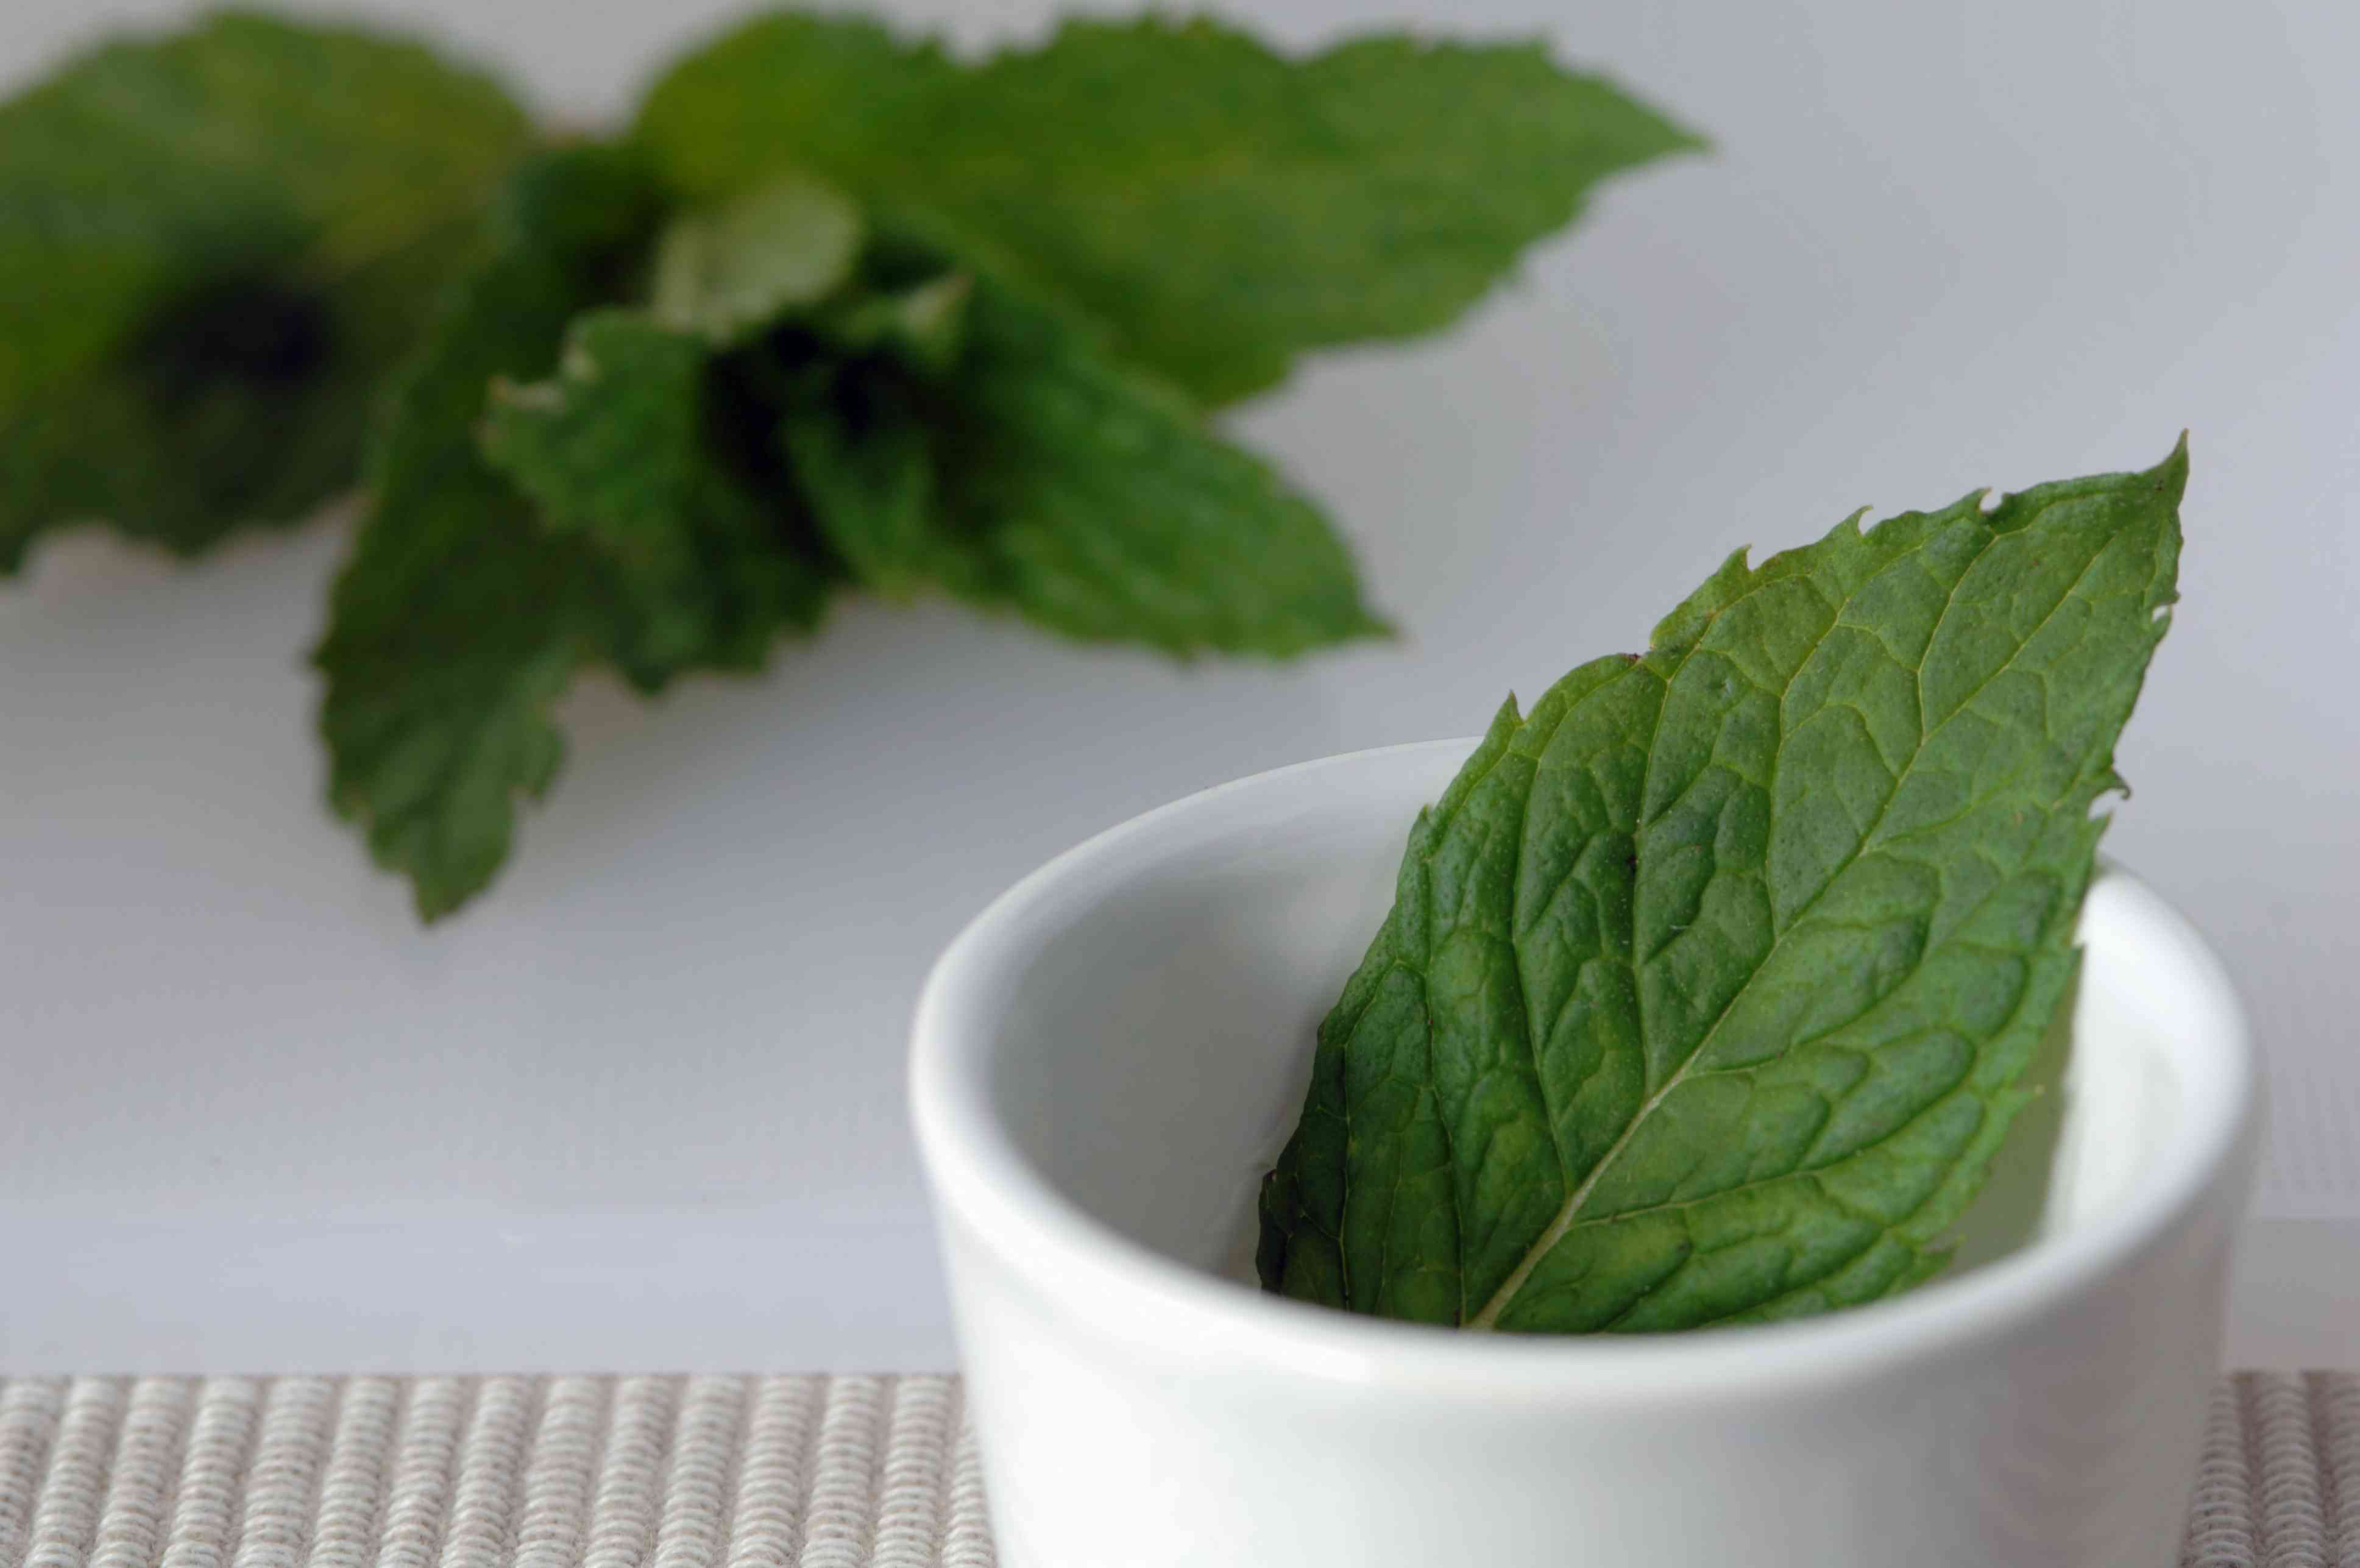 Peppermint leaves on a white counter and in a white bowl